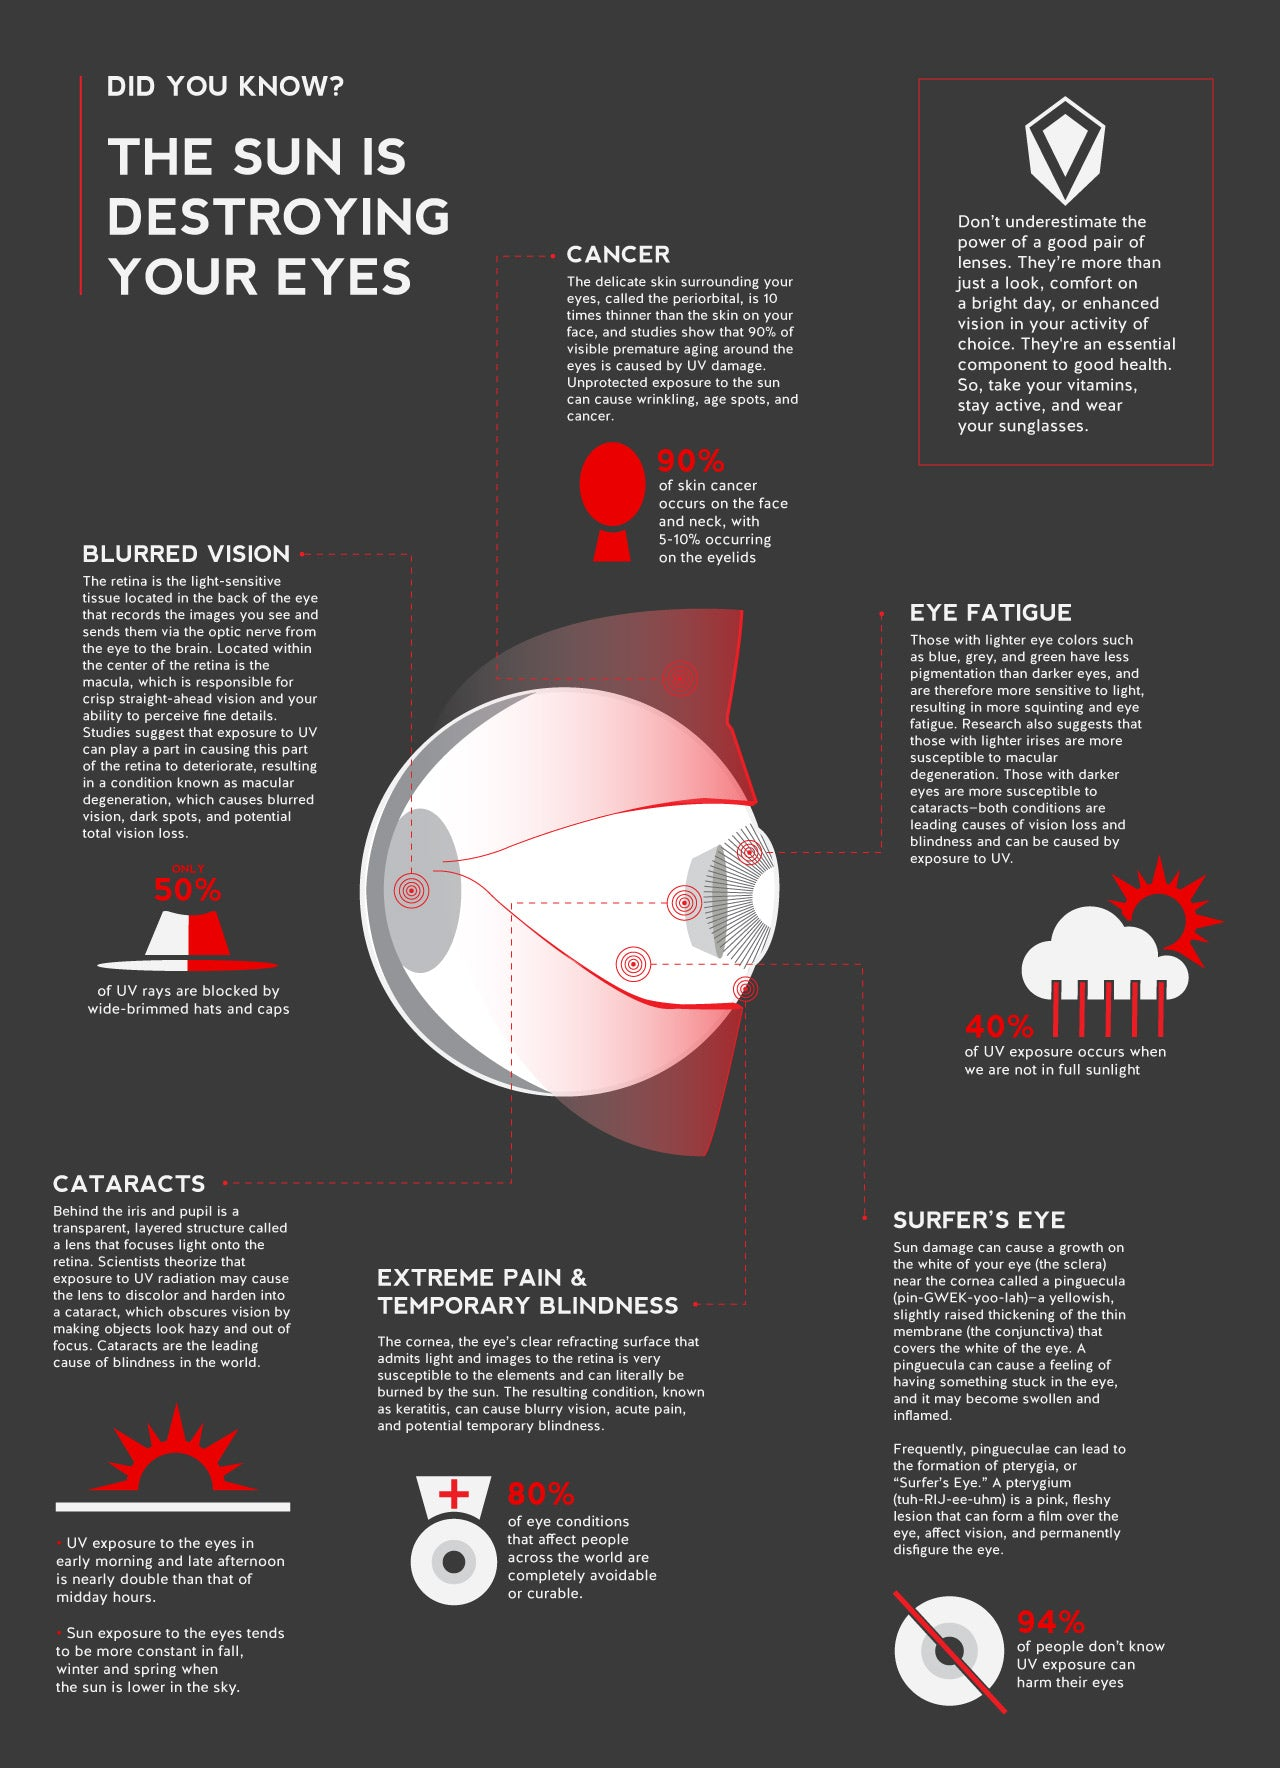 Did you know? The sun is destroying your eyes infographic